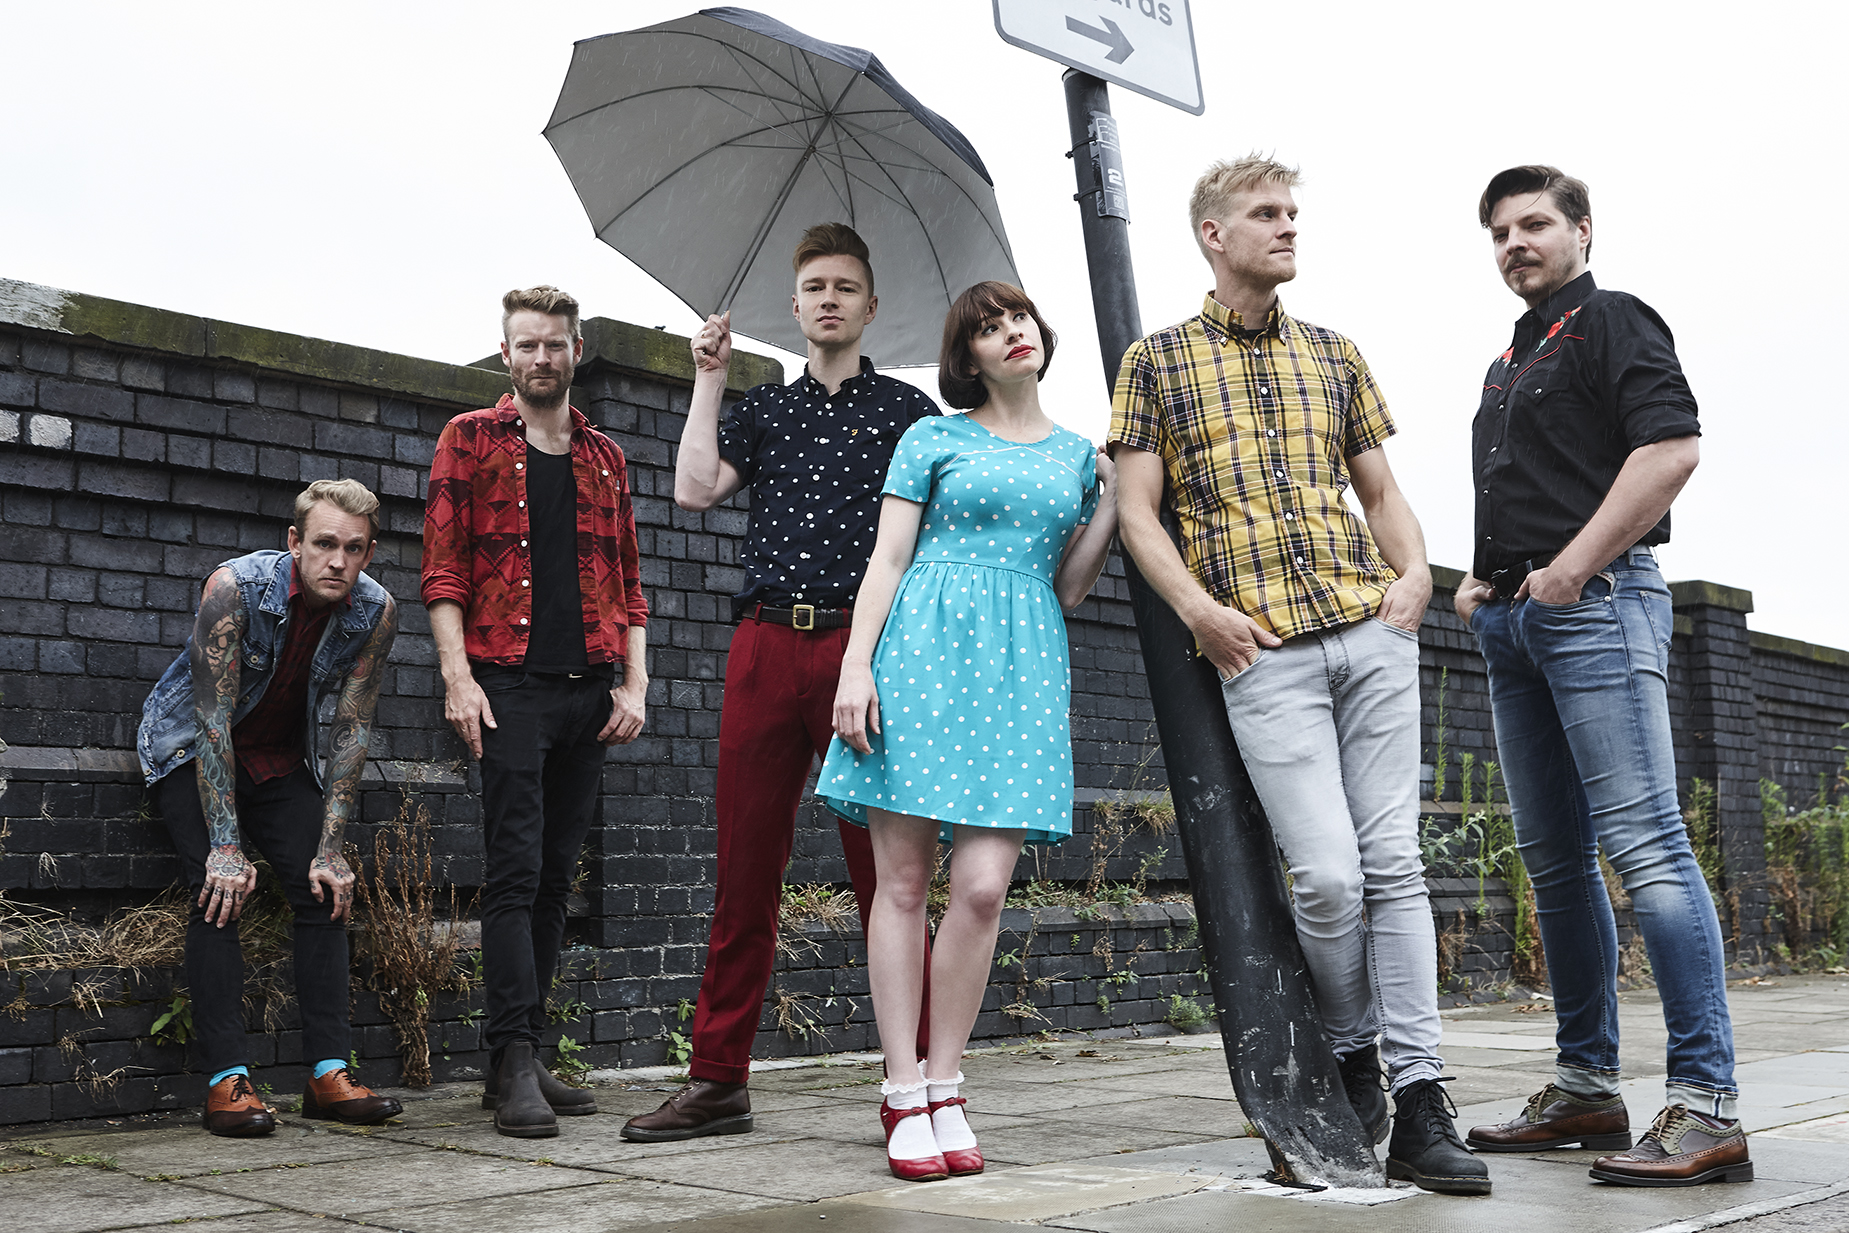 Skinny Lister - Press shot 2 - (David Edwards)-2.jpg